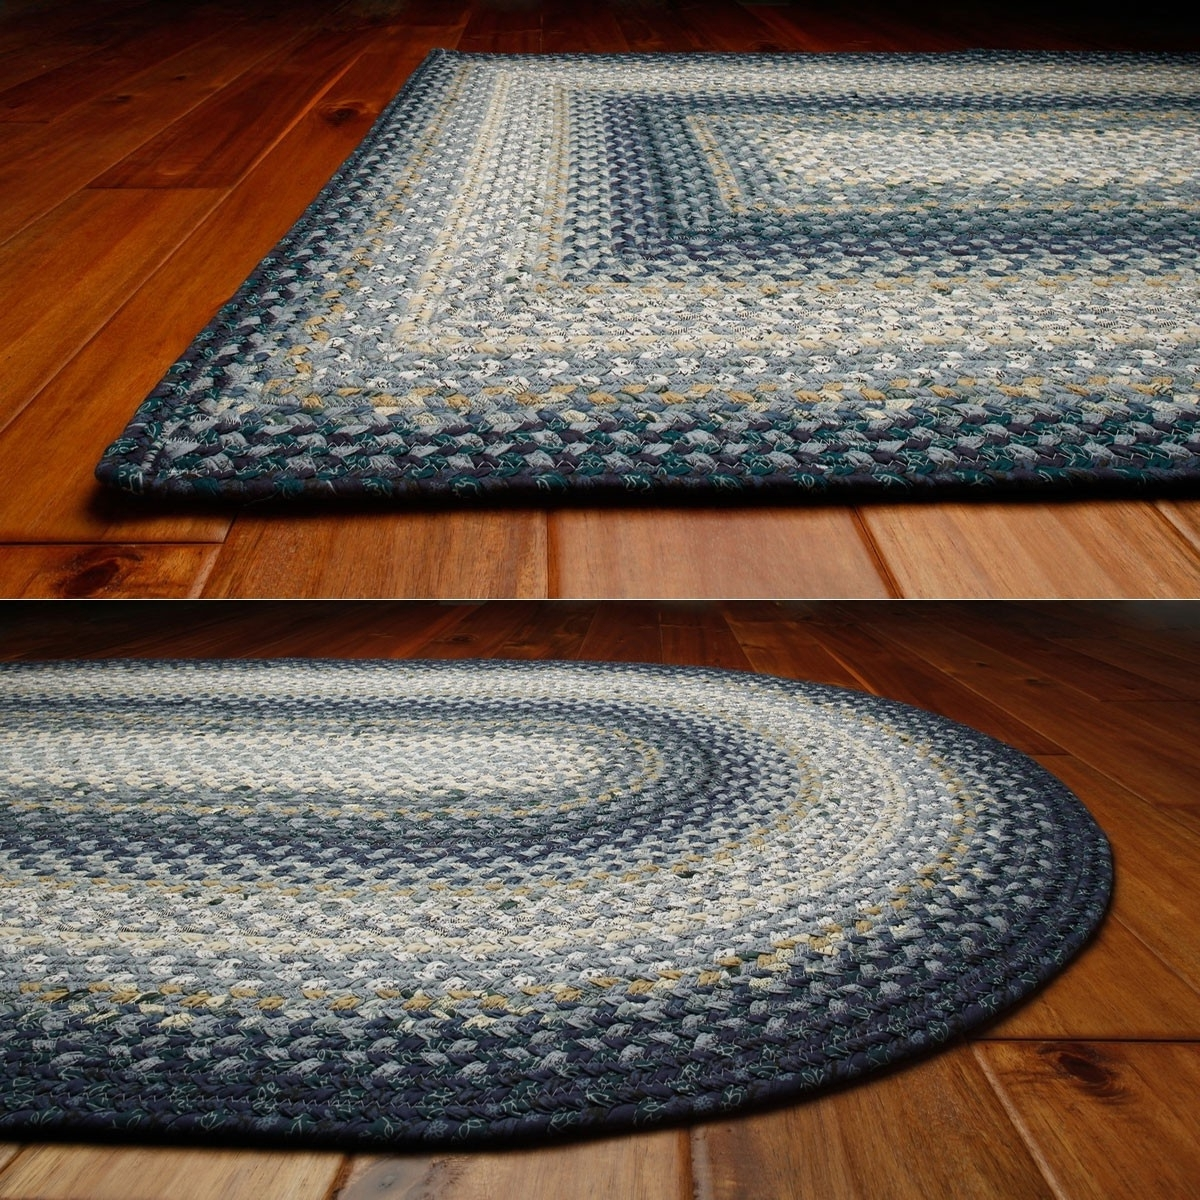 Wedgewood Cotton Braided Rugs Throughout Braided Rugs (Image 9 of 10)